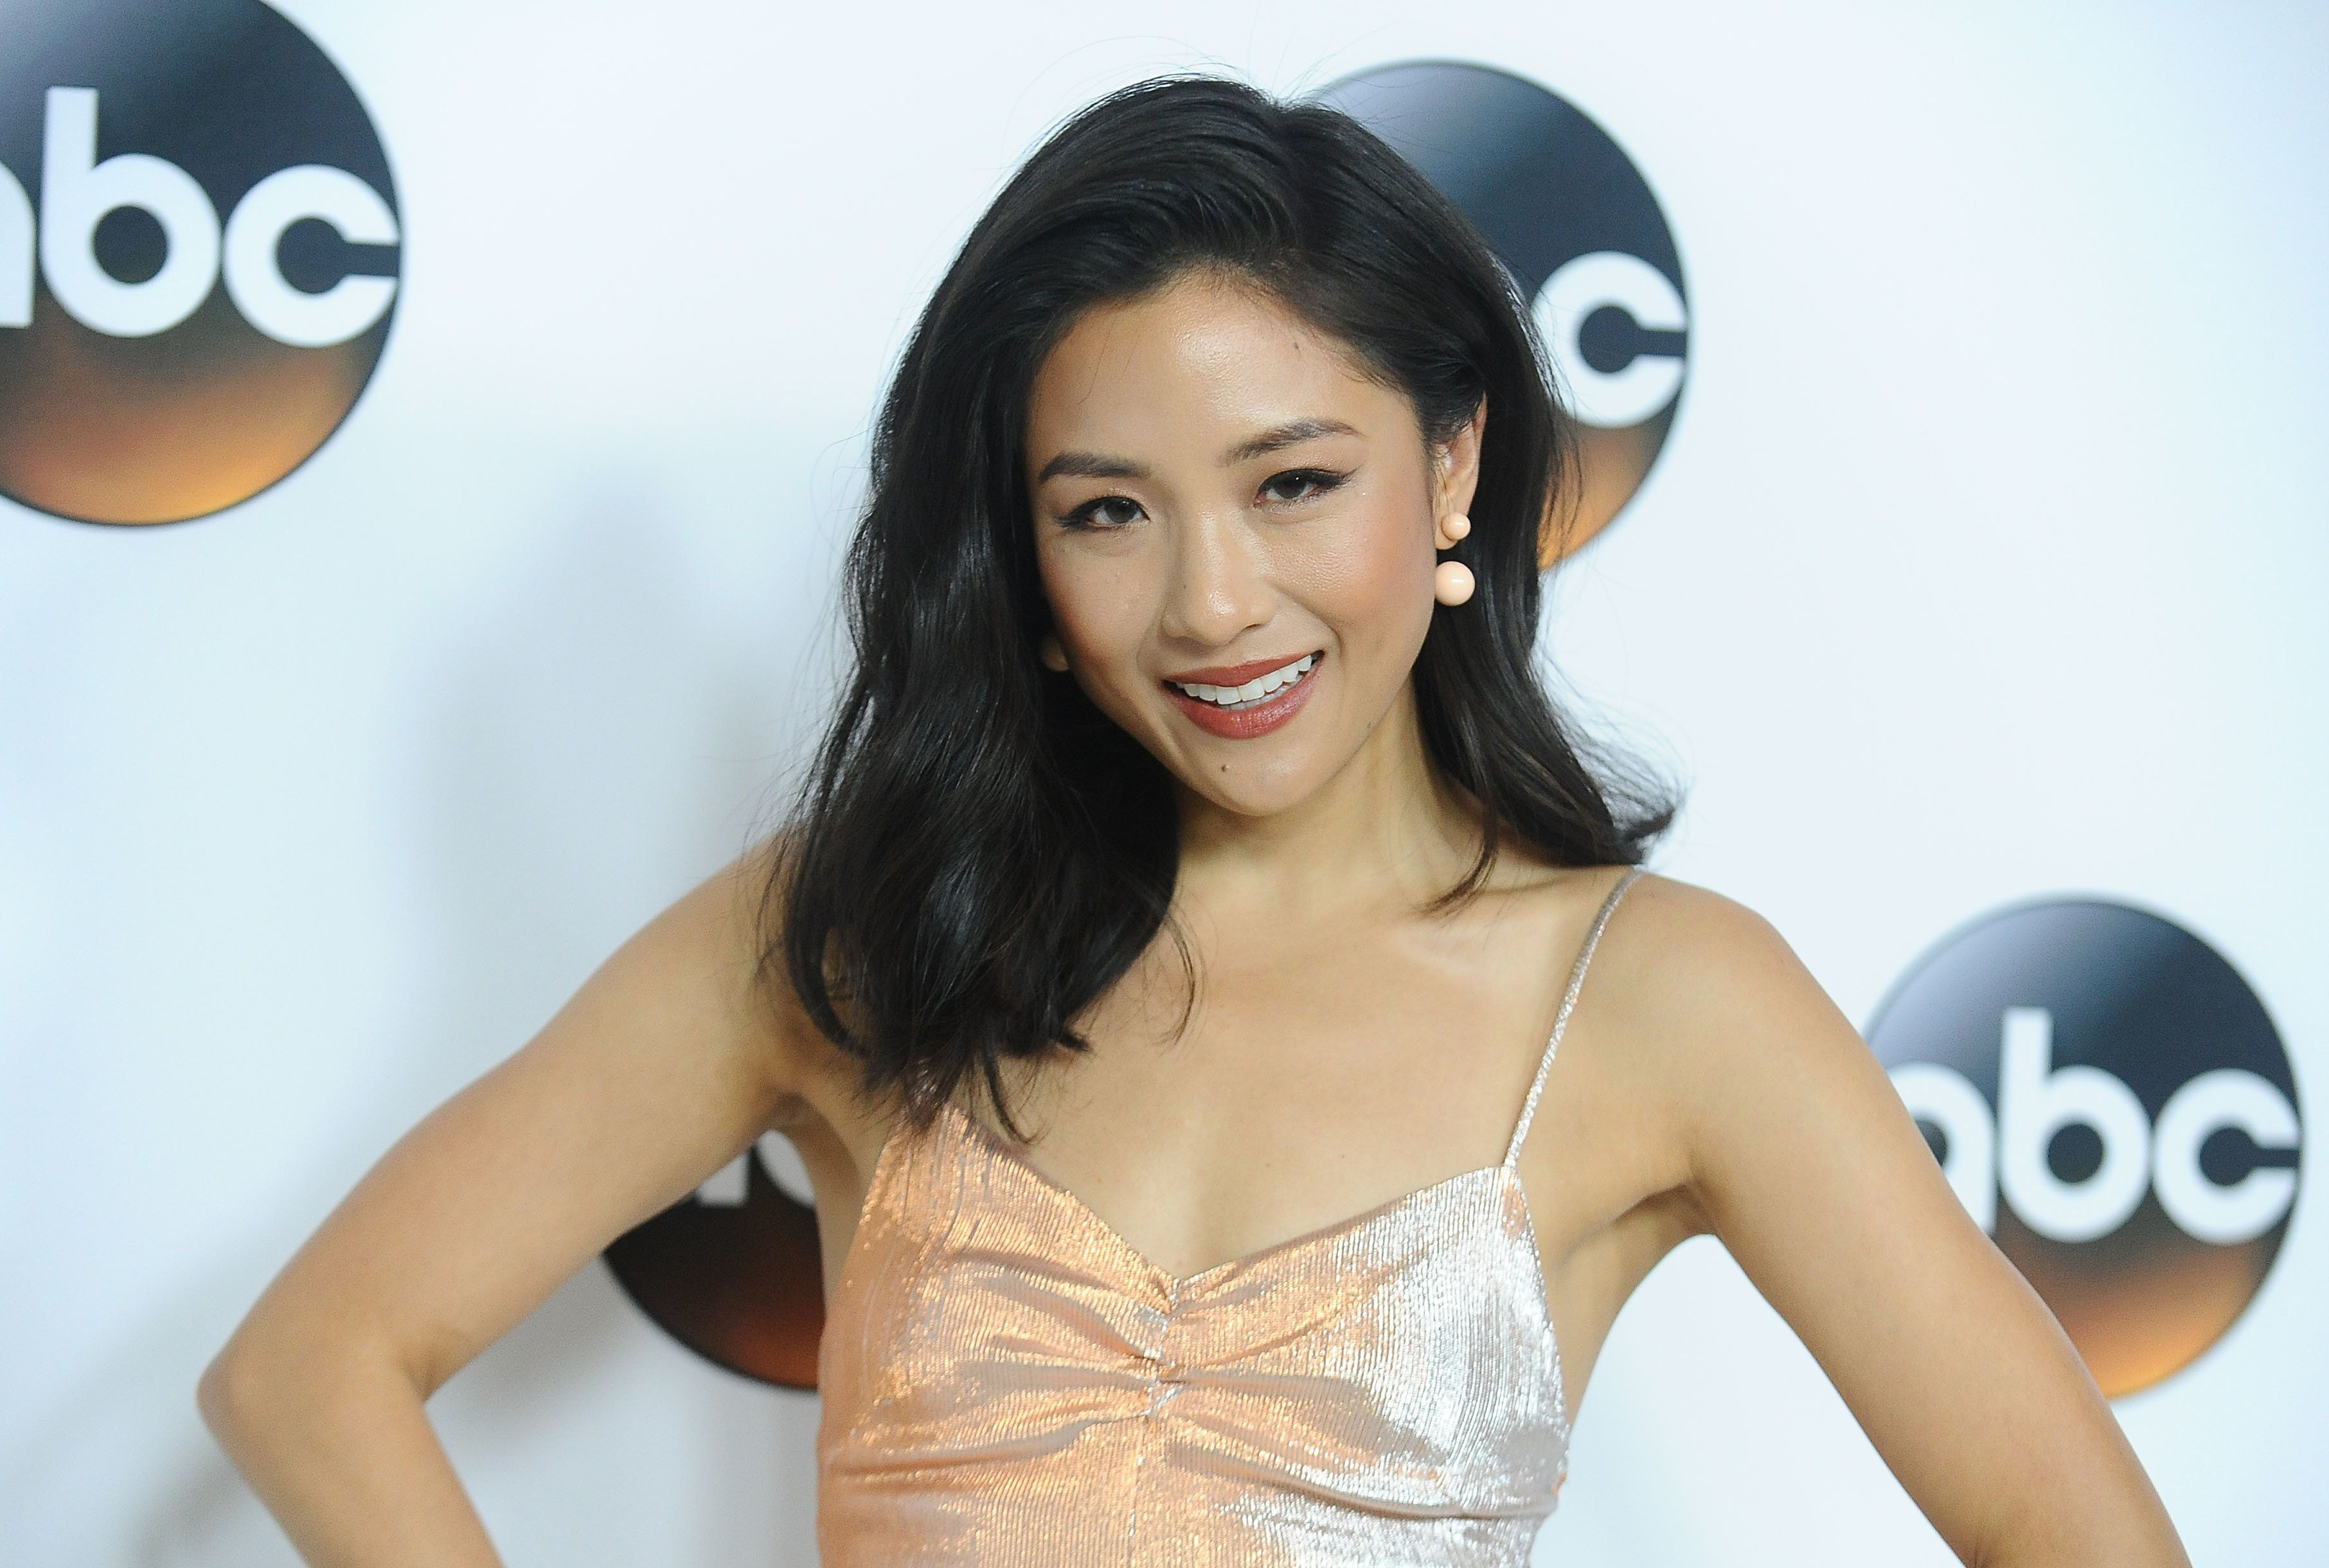 BEVERLY HILLS, CA - AUGUST 06:  Actress Constance Wu attends the Disney ABC Television Group TCA summer press tour at The Beverly Hilton Hotel on August 6, 2017 in Beverly Hills, California.  (Photo by Jason LaVeris/FilmMagic)